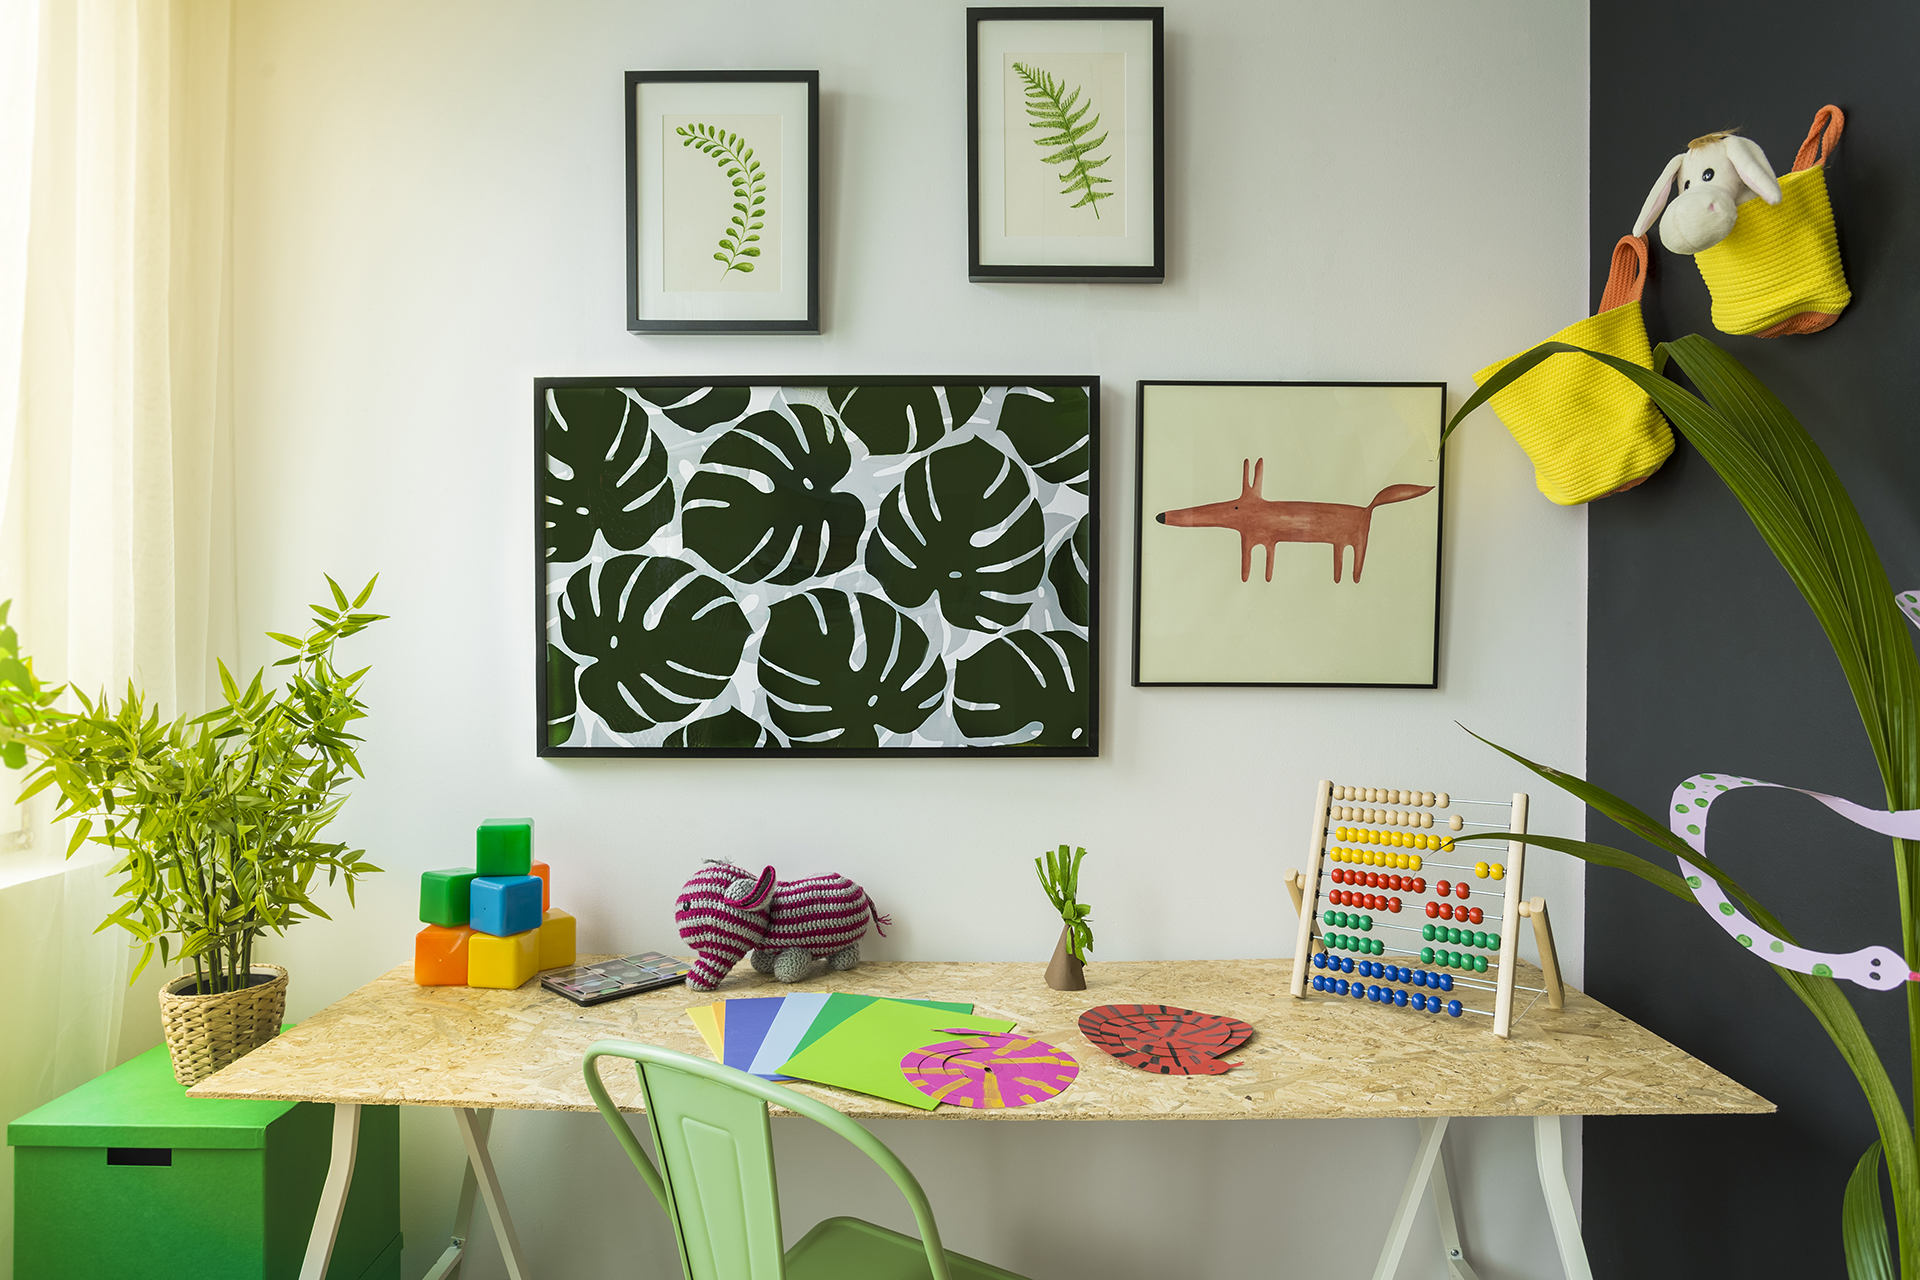 Creative style child study room with desk and green chair